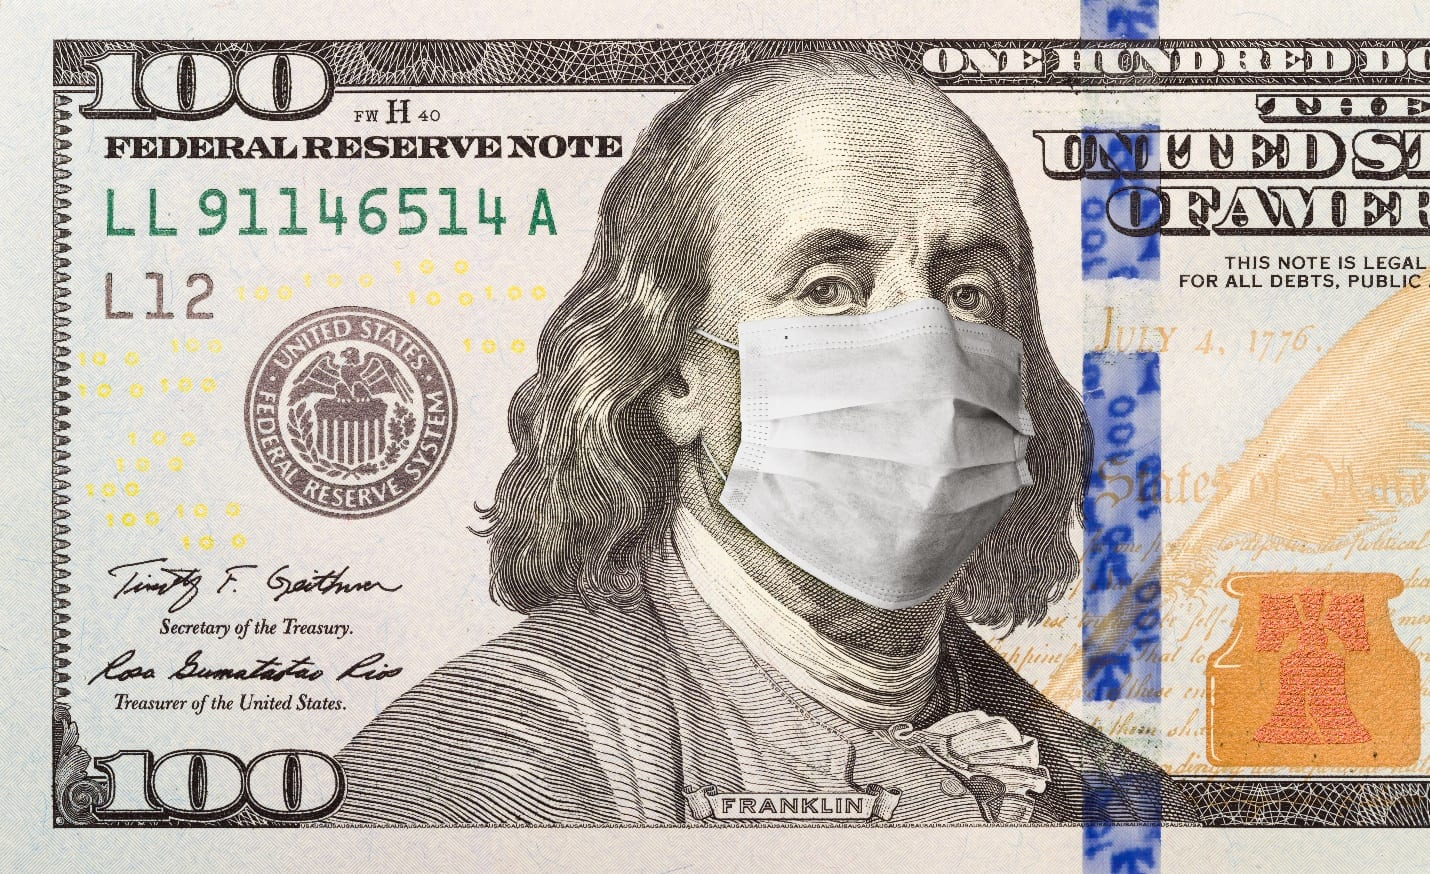 One Hundred Dollar Bill With Medical Face Mask on Benjamin Franklin